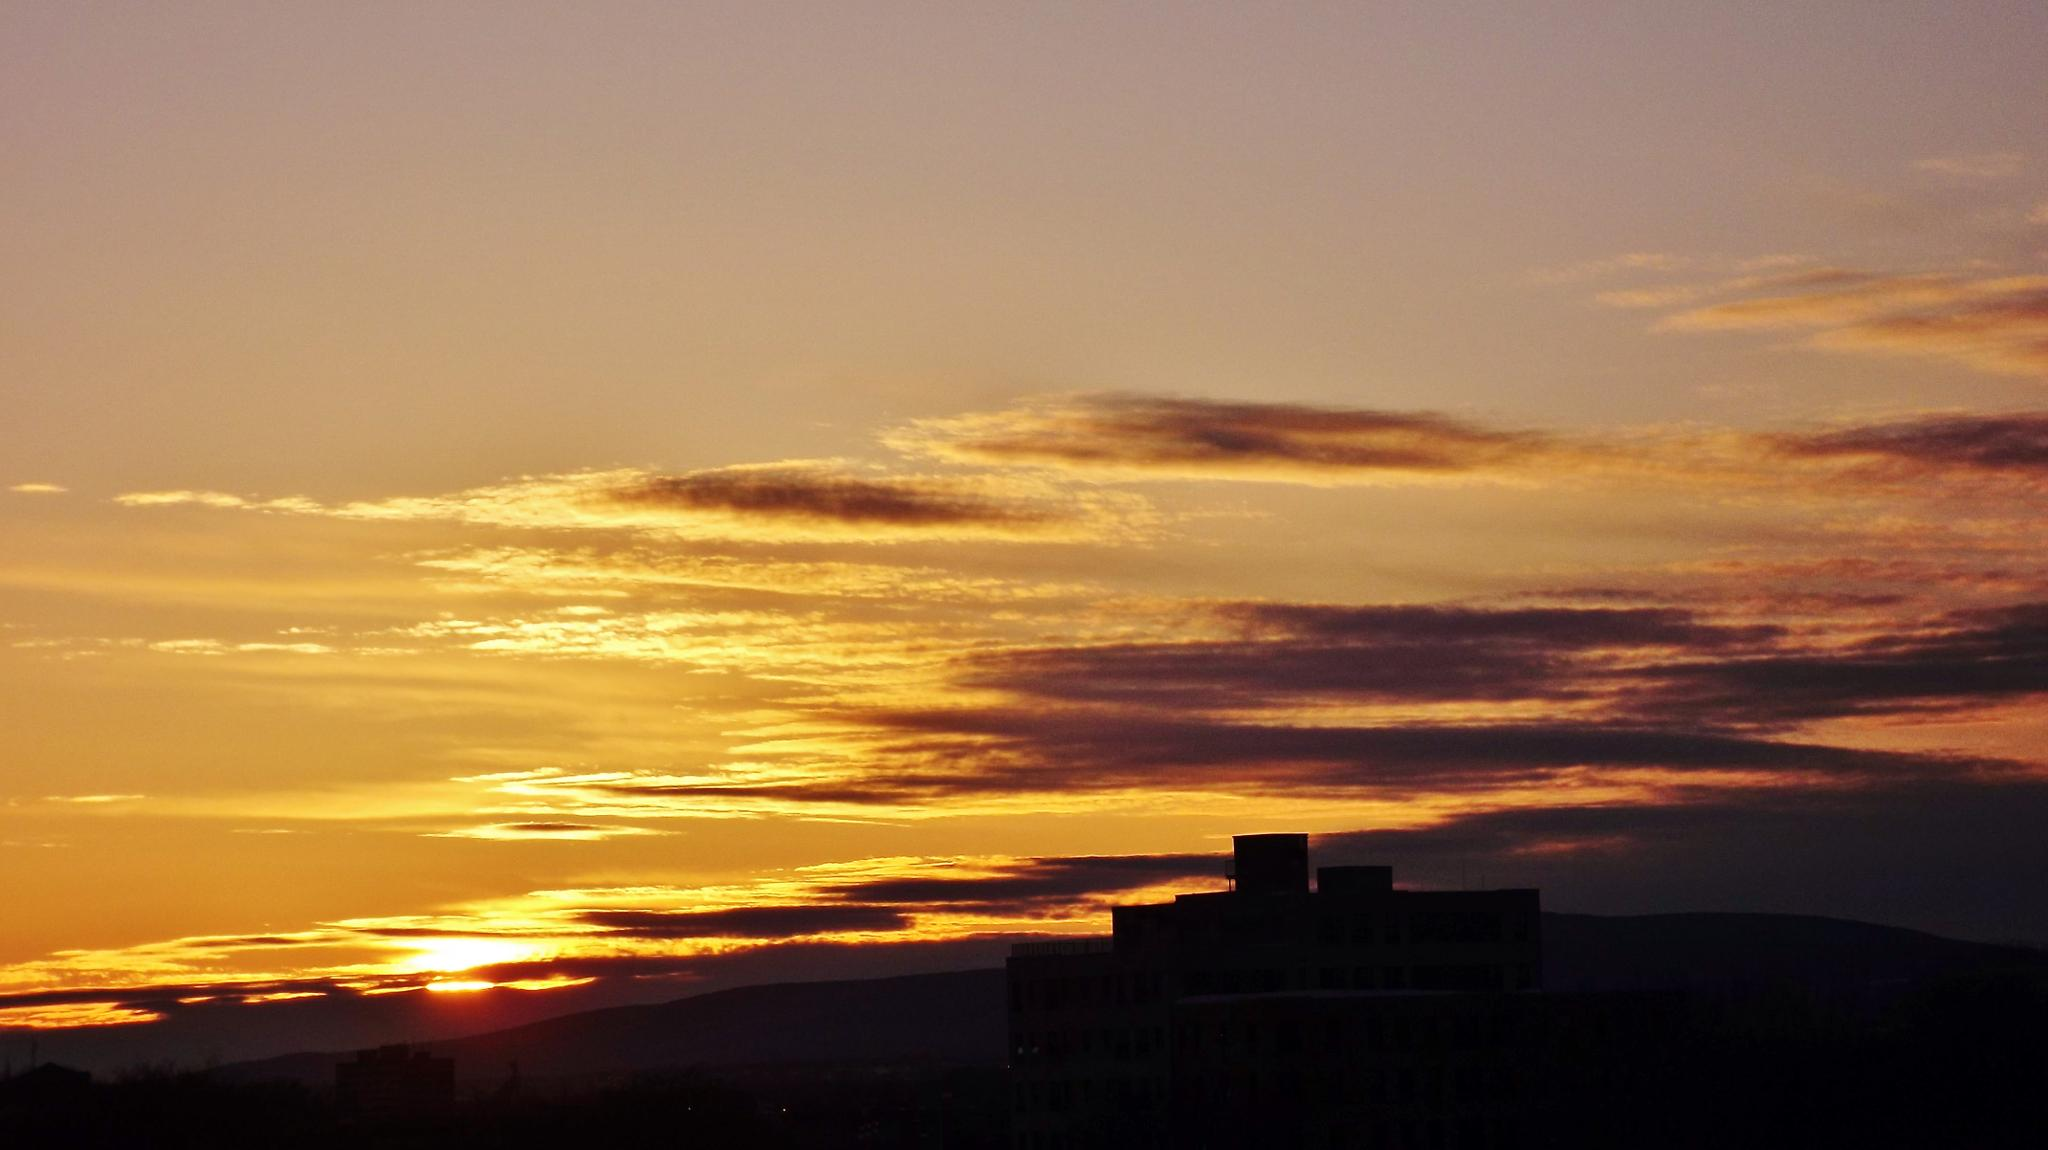 Quebec city yesterday downtown sunset & clouds by real.michaud.5036